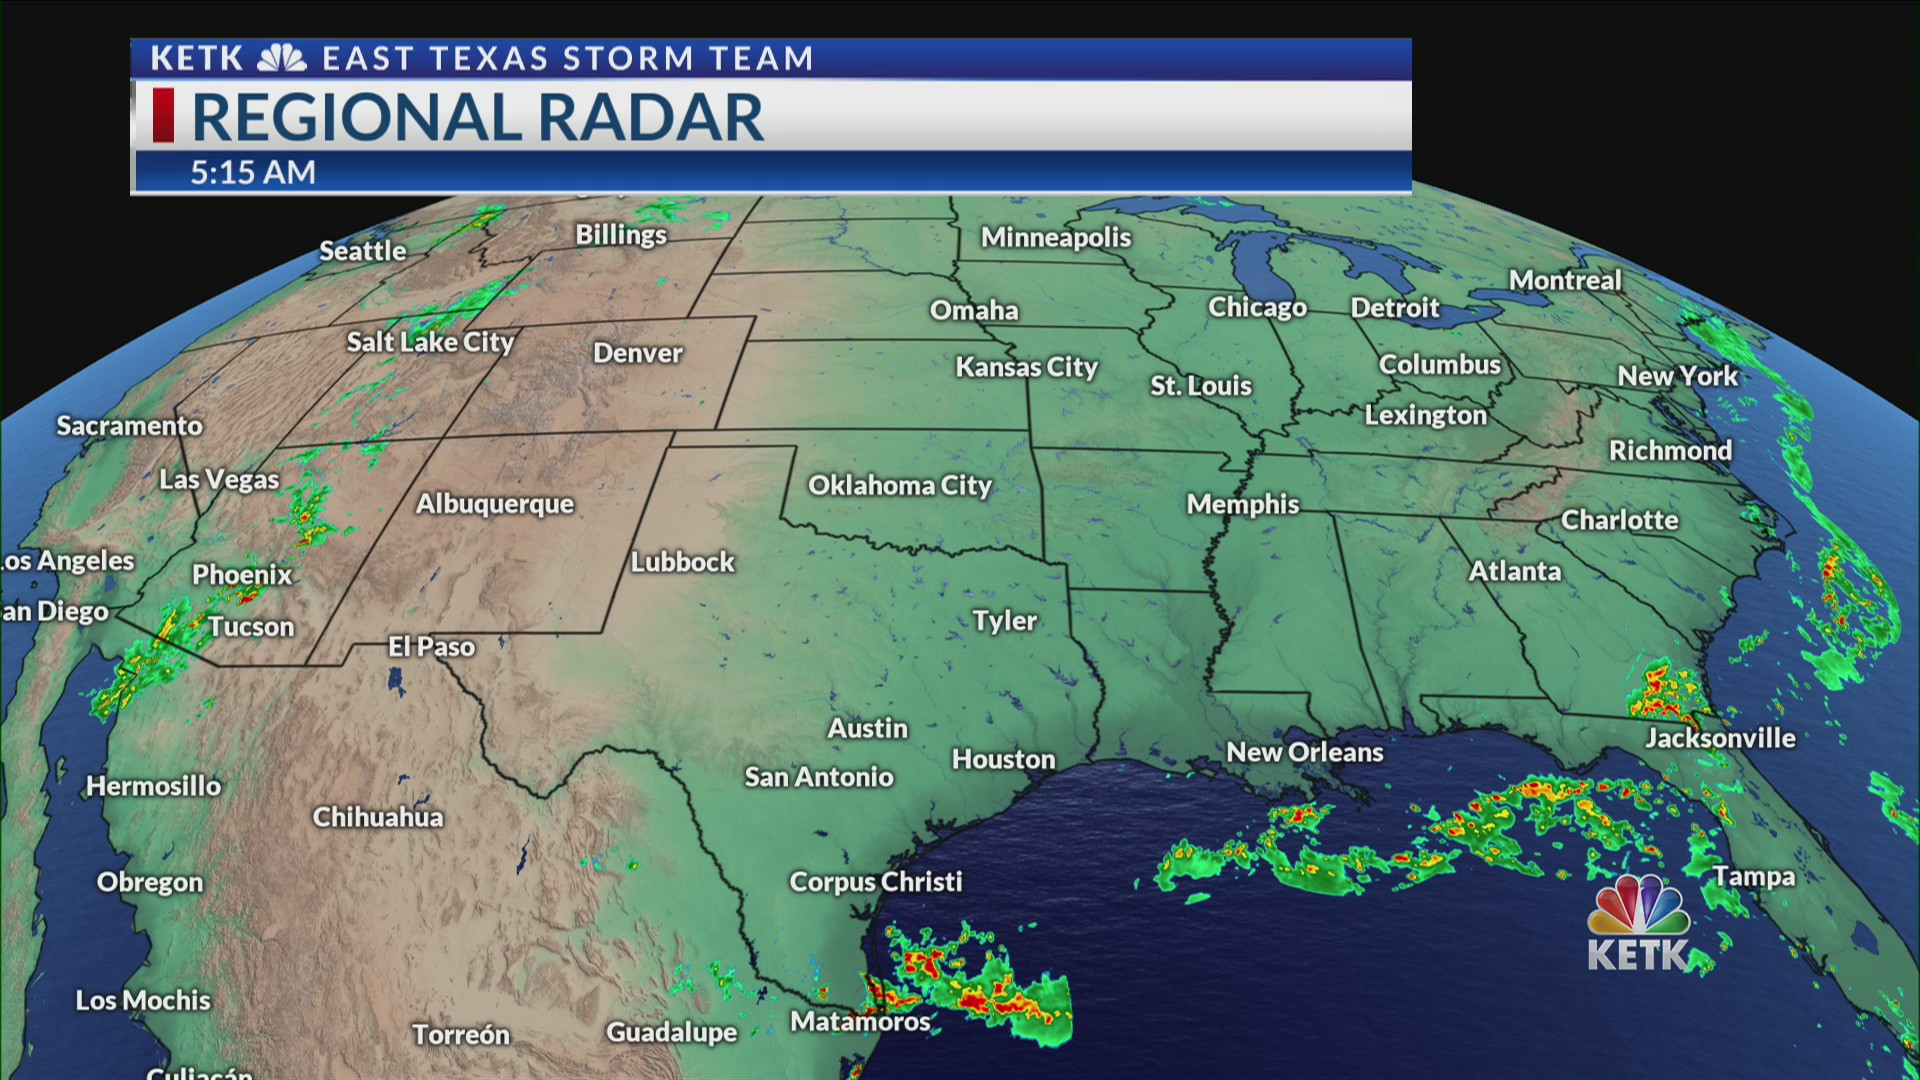 Wednesday Night Forecast: Storms increasing overnight, cold front